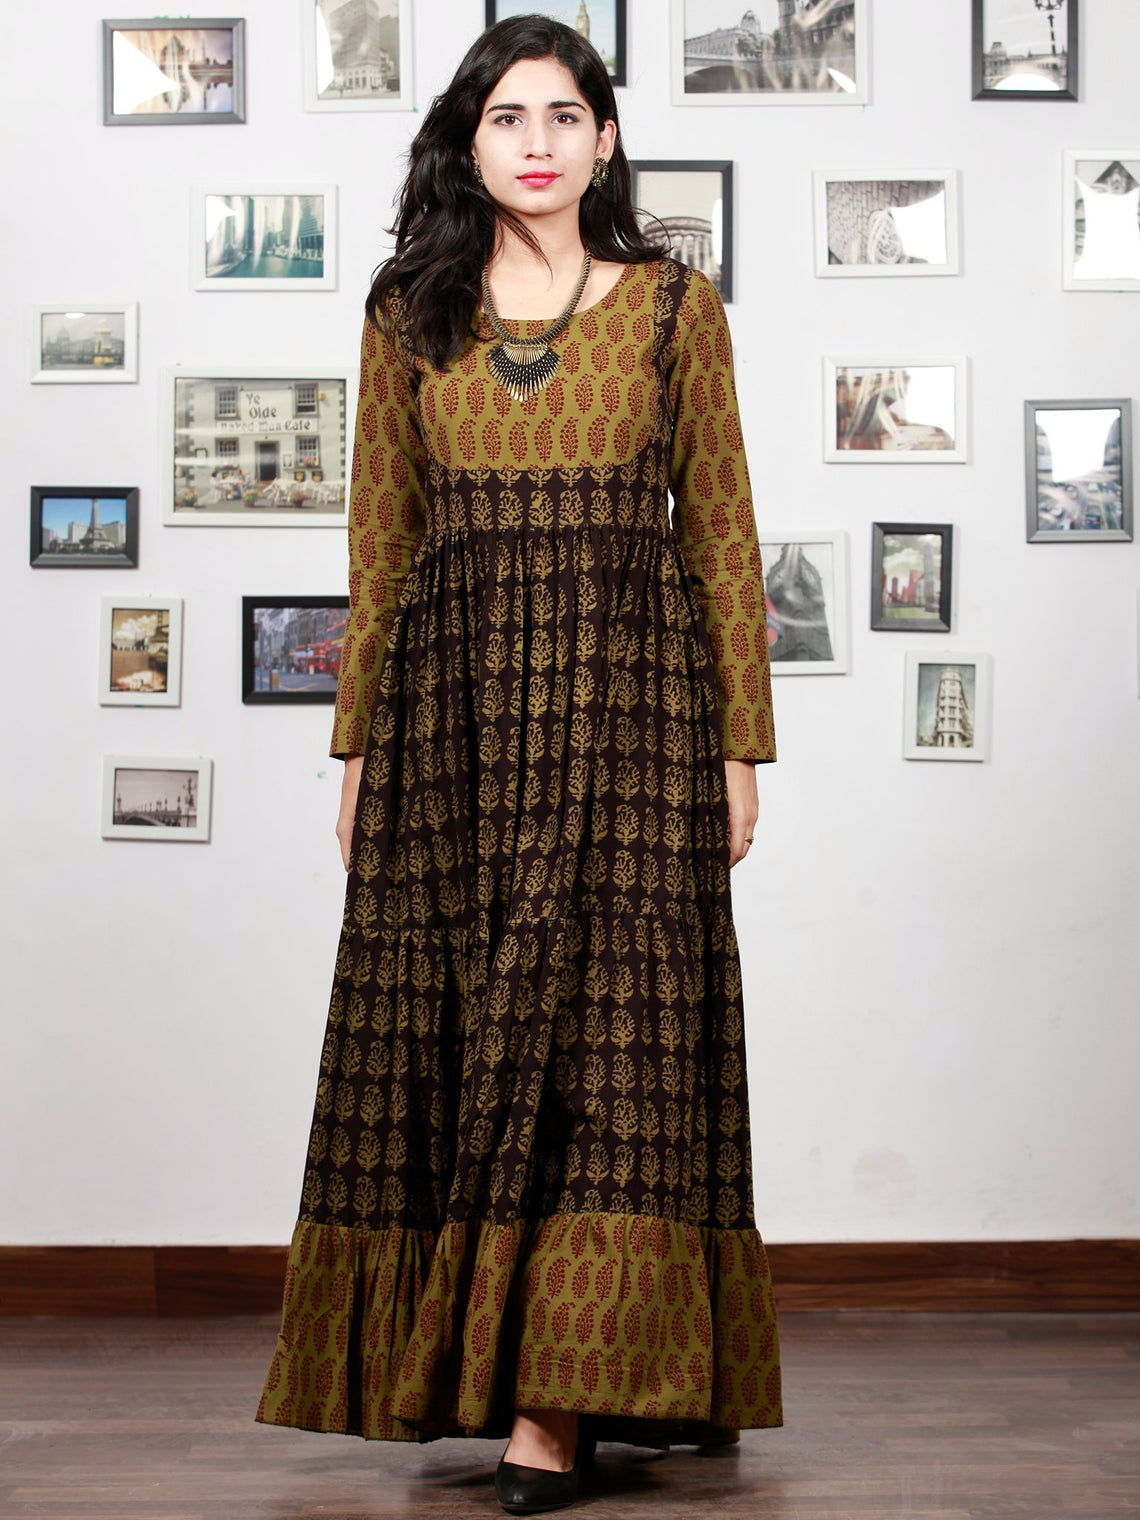 0a15f19bdc1318 ... Olive Green Black Bagh Printed Cotton Long Tier Dress - D135F1704 ...